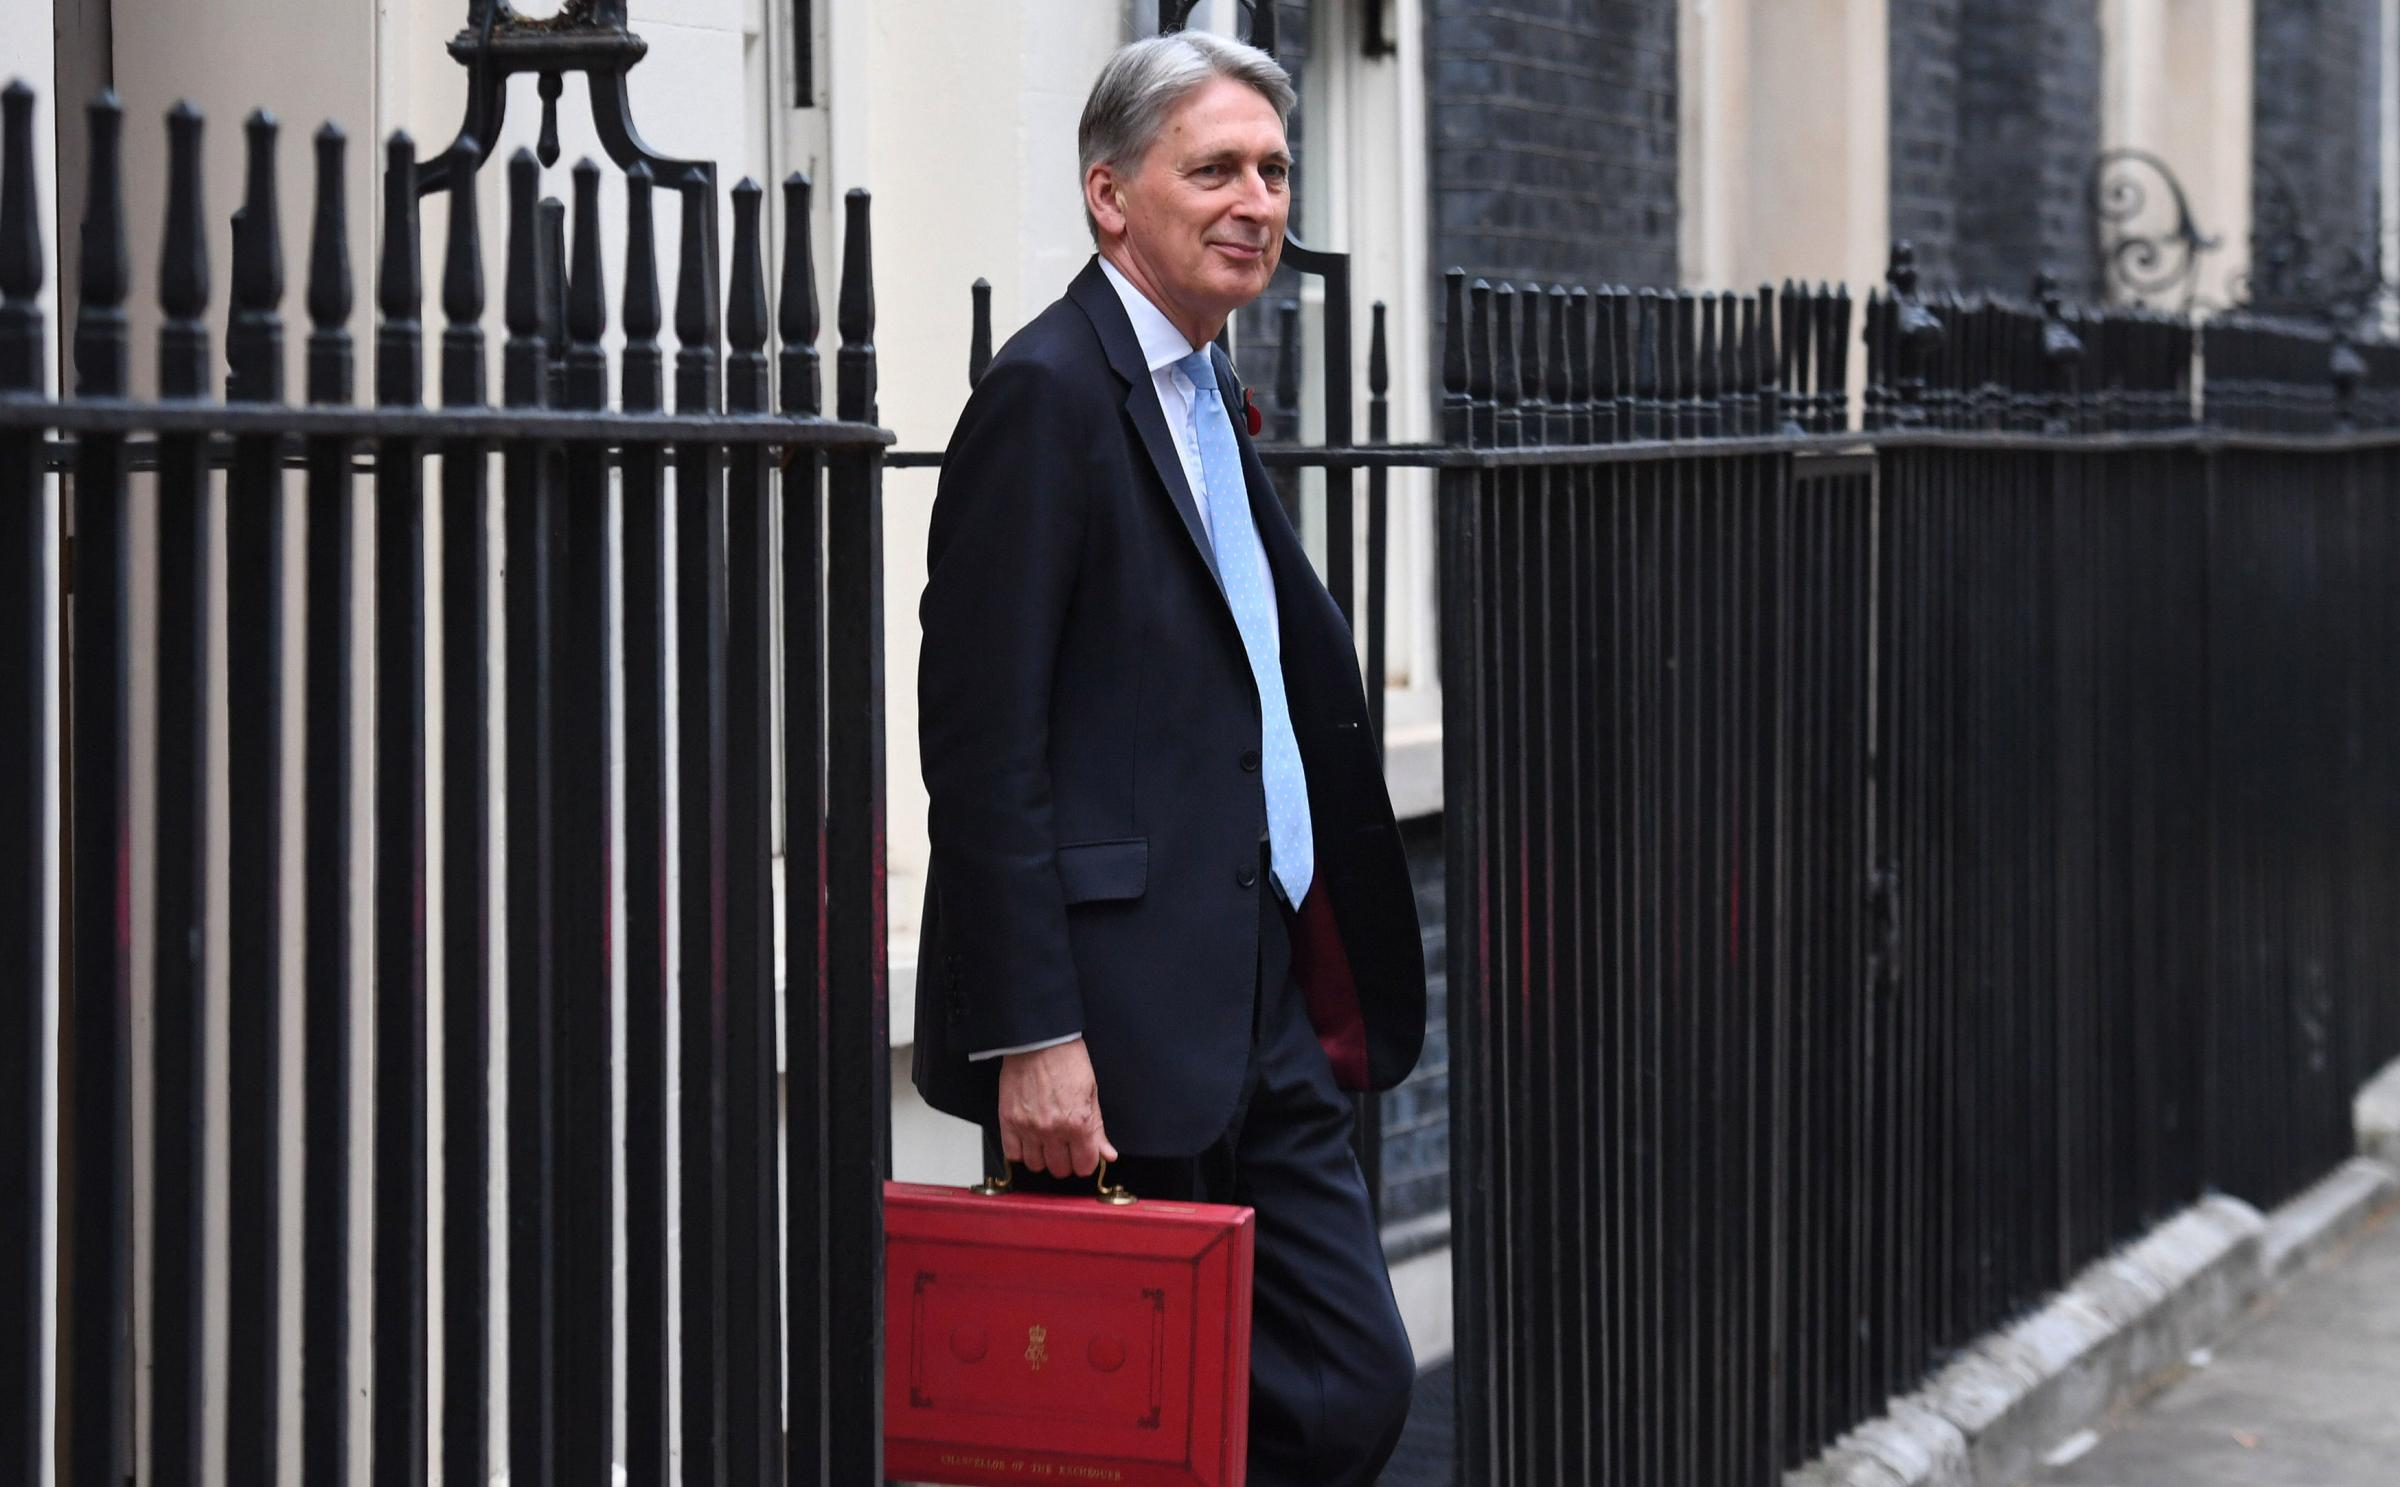 Philip Hammond's less politicised approach fares better